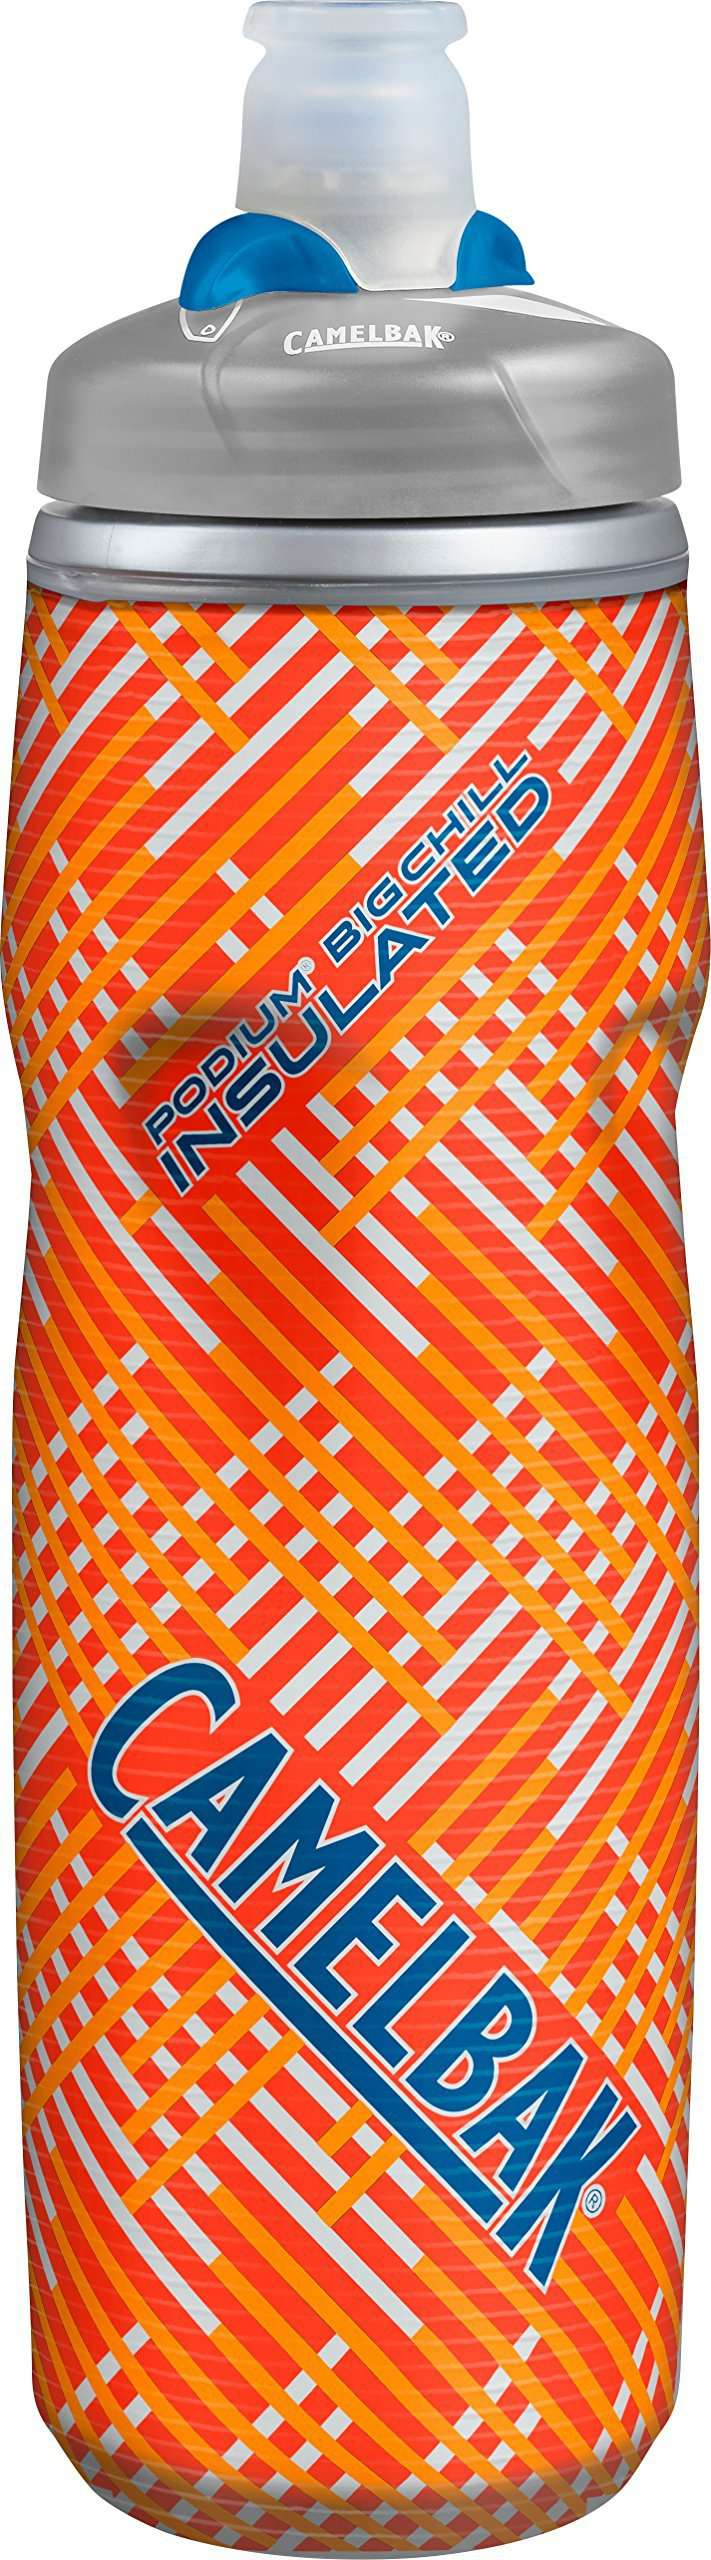 CamelBak 00842 Podium Big Chill 25 Oz Poppy 0.75 Litre (Orange)